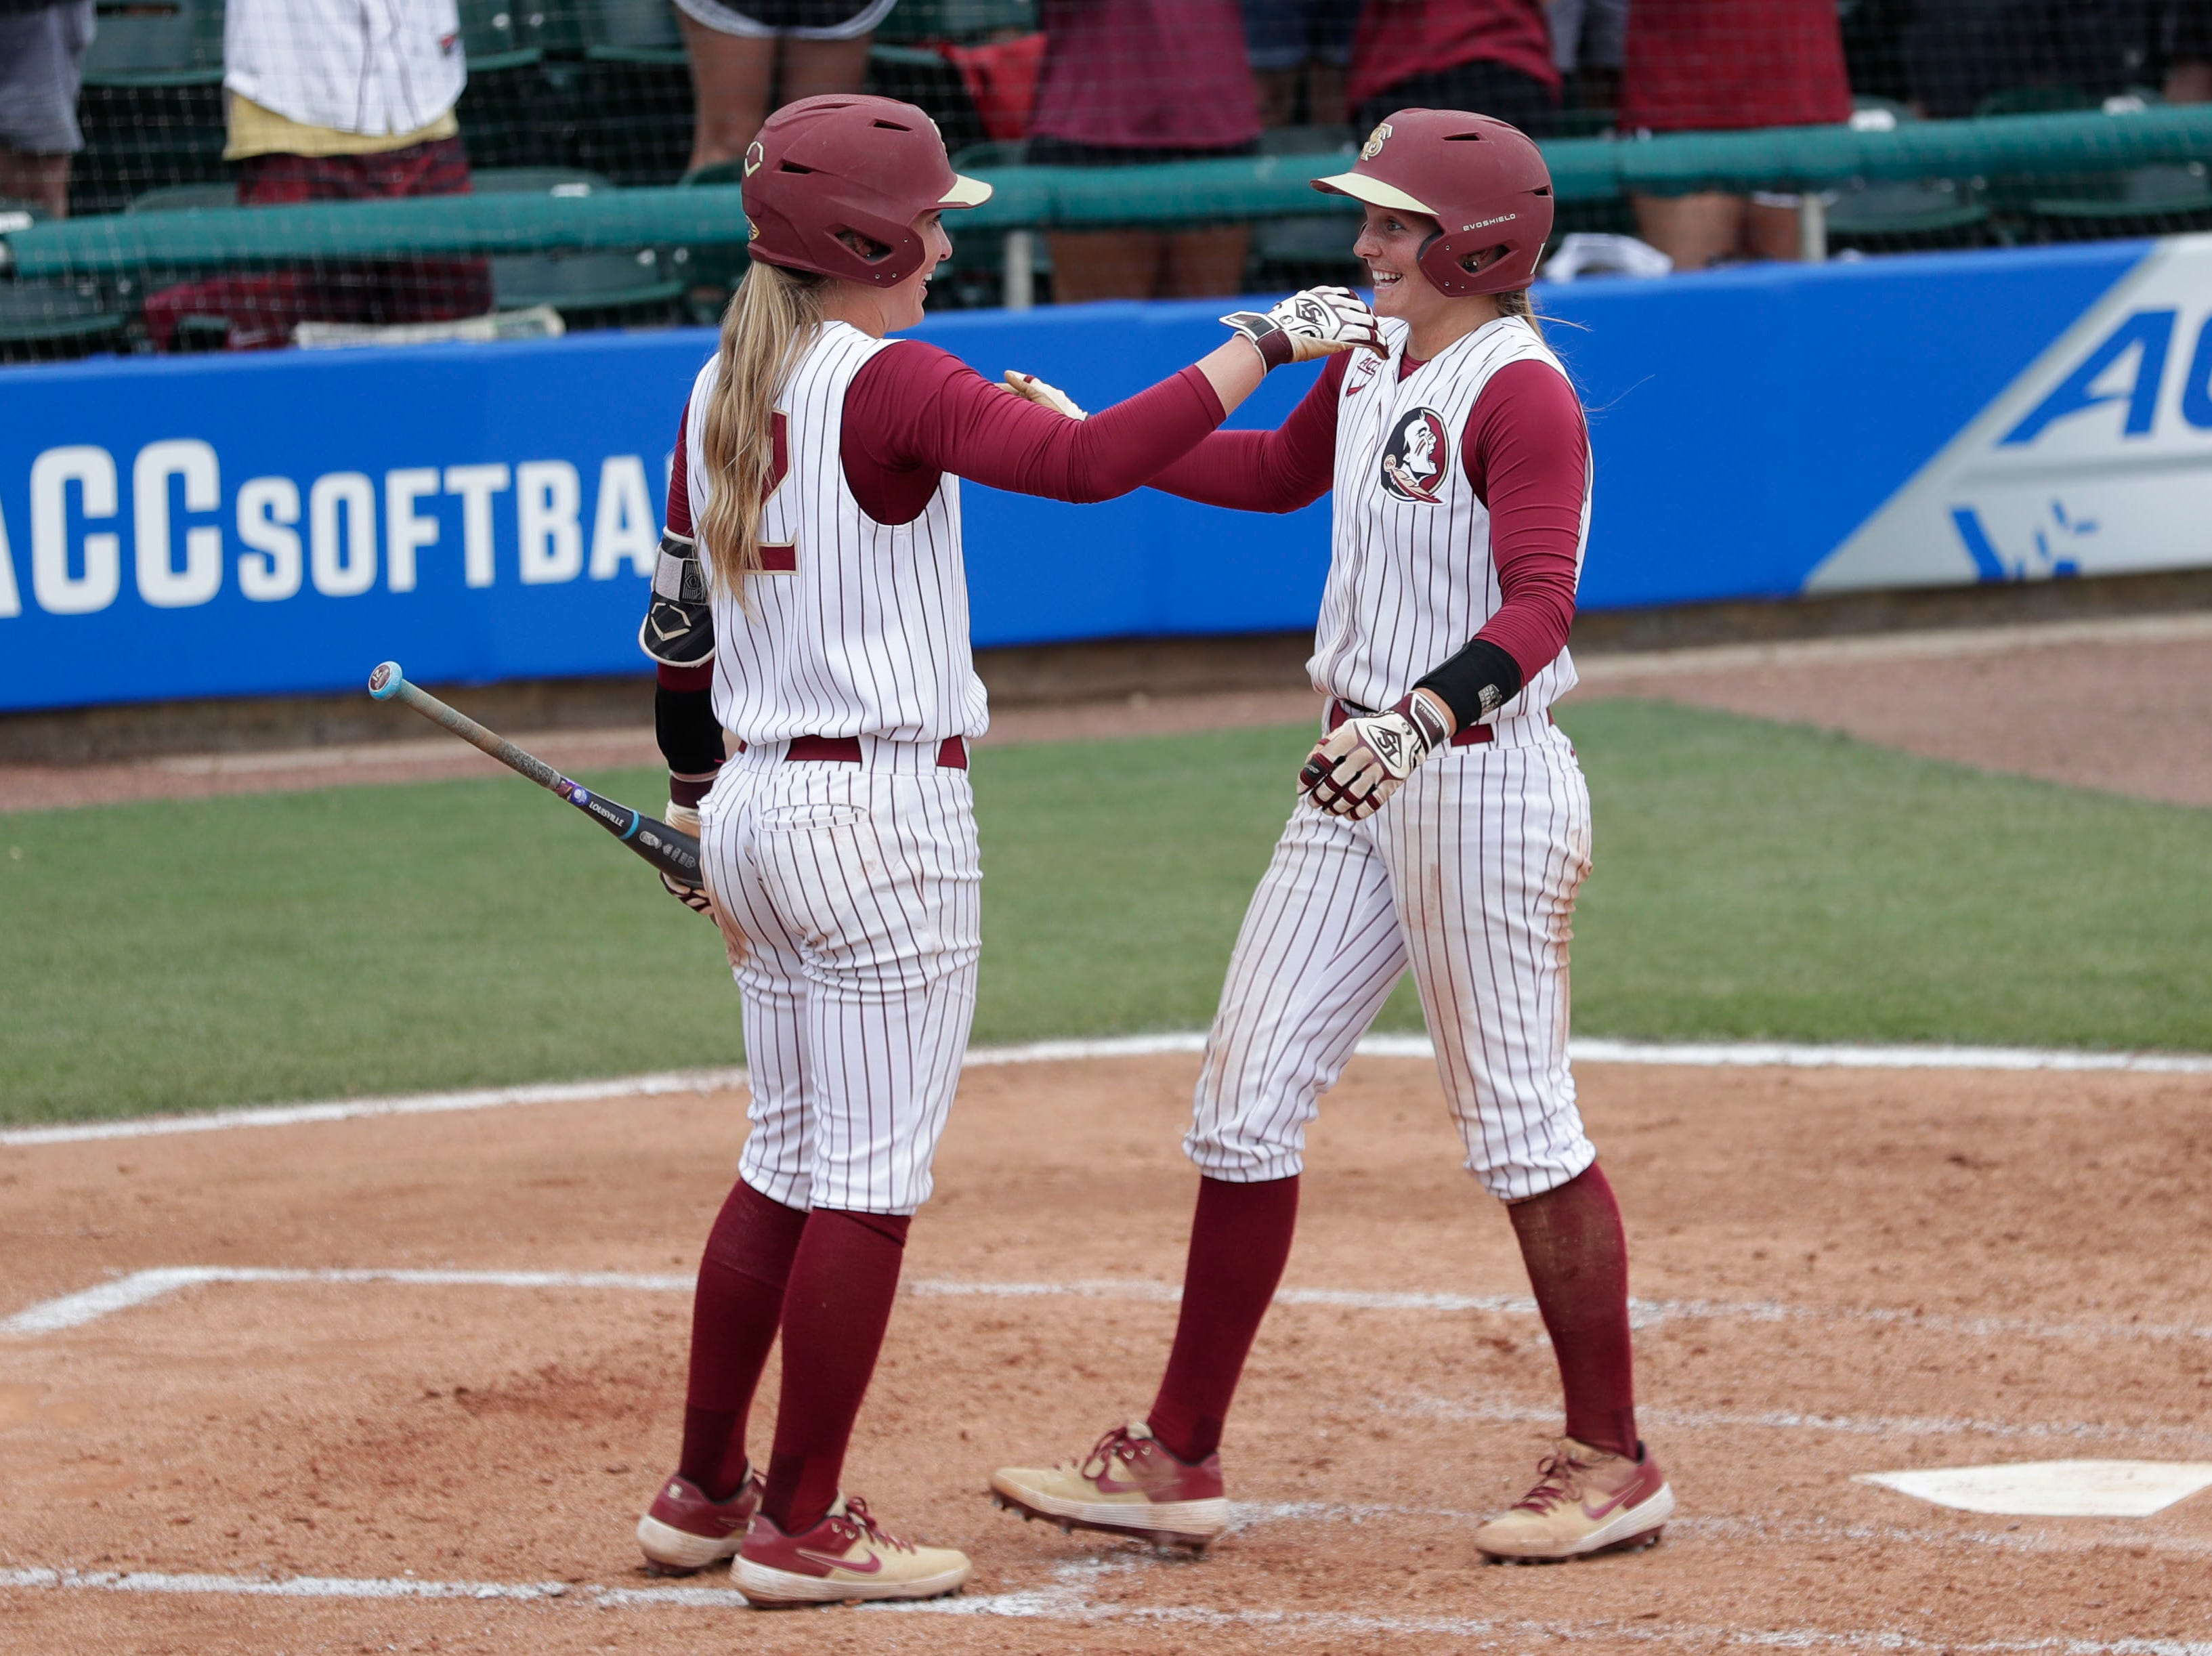 Florida State Seminoles infielder Cali Harrod (10) hugs Florida State Seminoles infielder Carsyn Gordon (12) after hitting a home run. The Florida State Seminoles host the UNC Tar Heels for the ACC Softball Tournament finals Saturday, May 11, 2019.